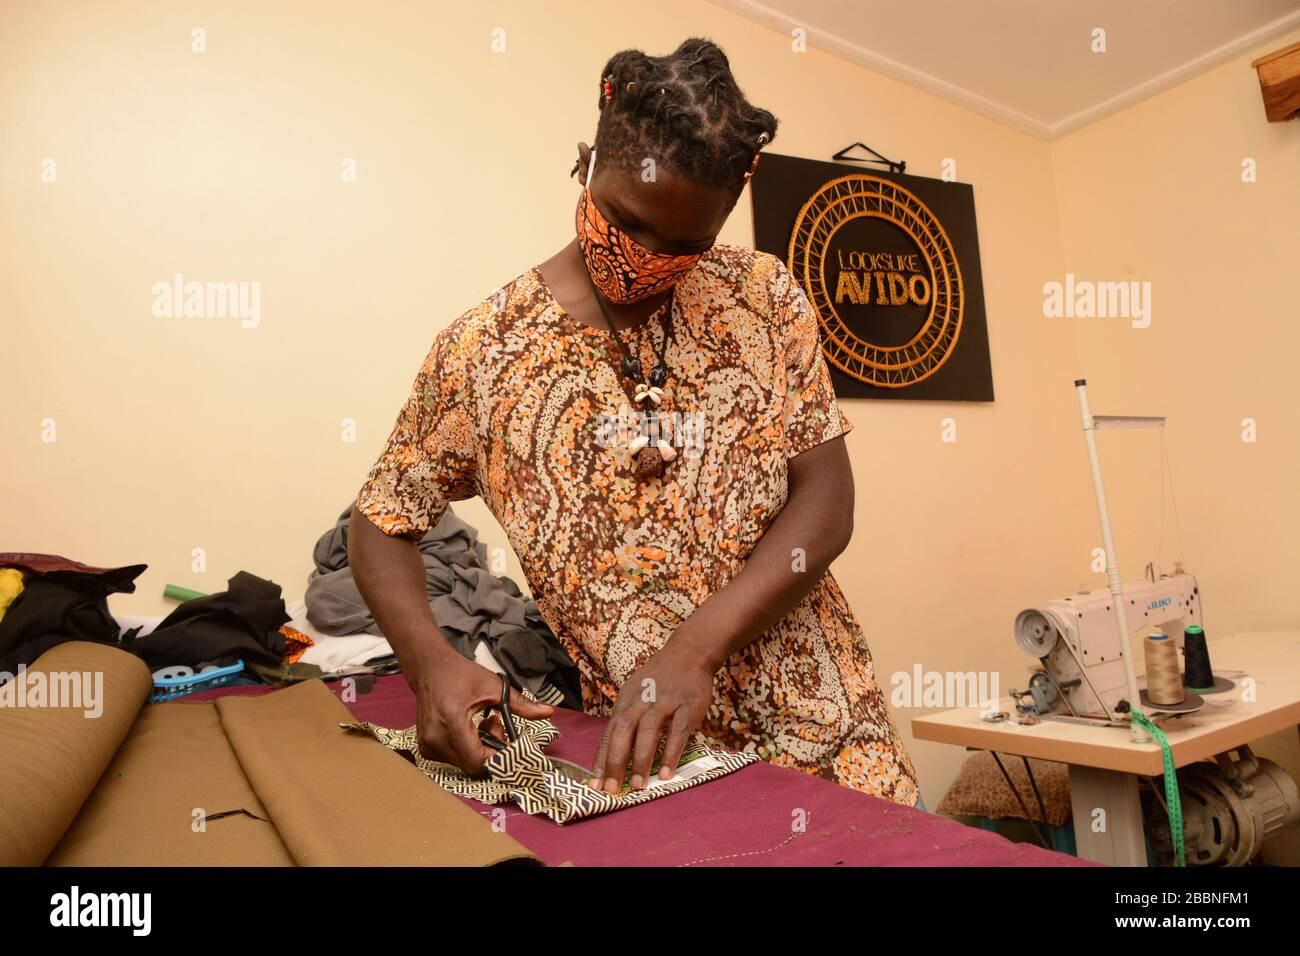 David Ochieng Founder Of Lookslike Avido Fashion Line Makes Re Usable Face Masks At His Office